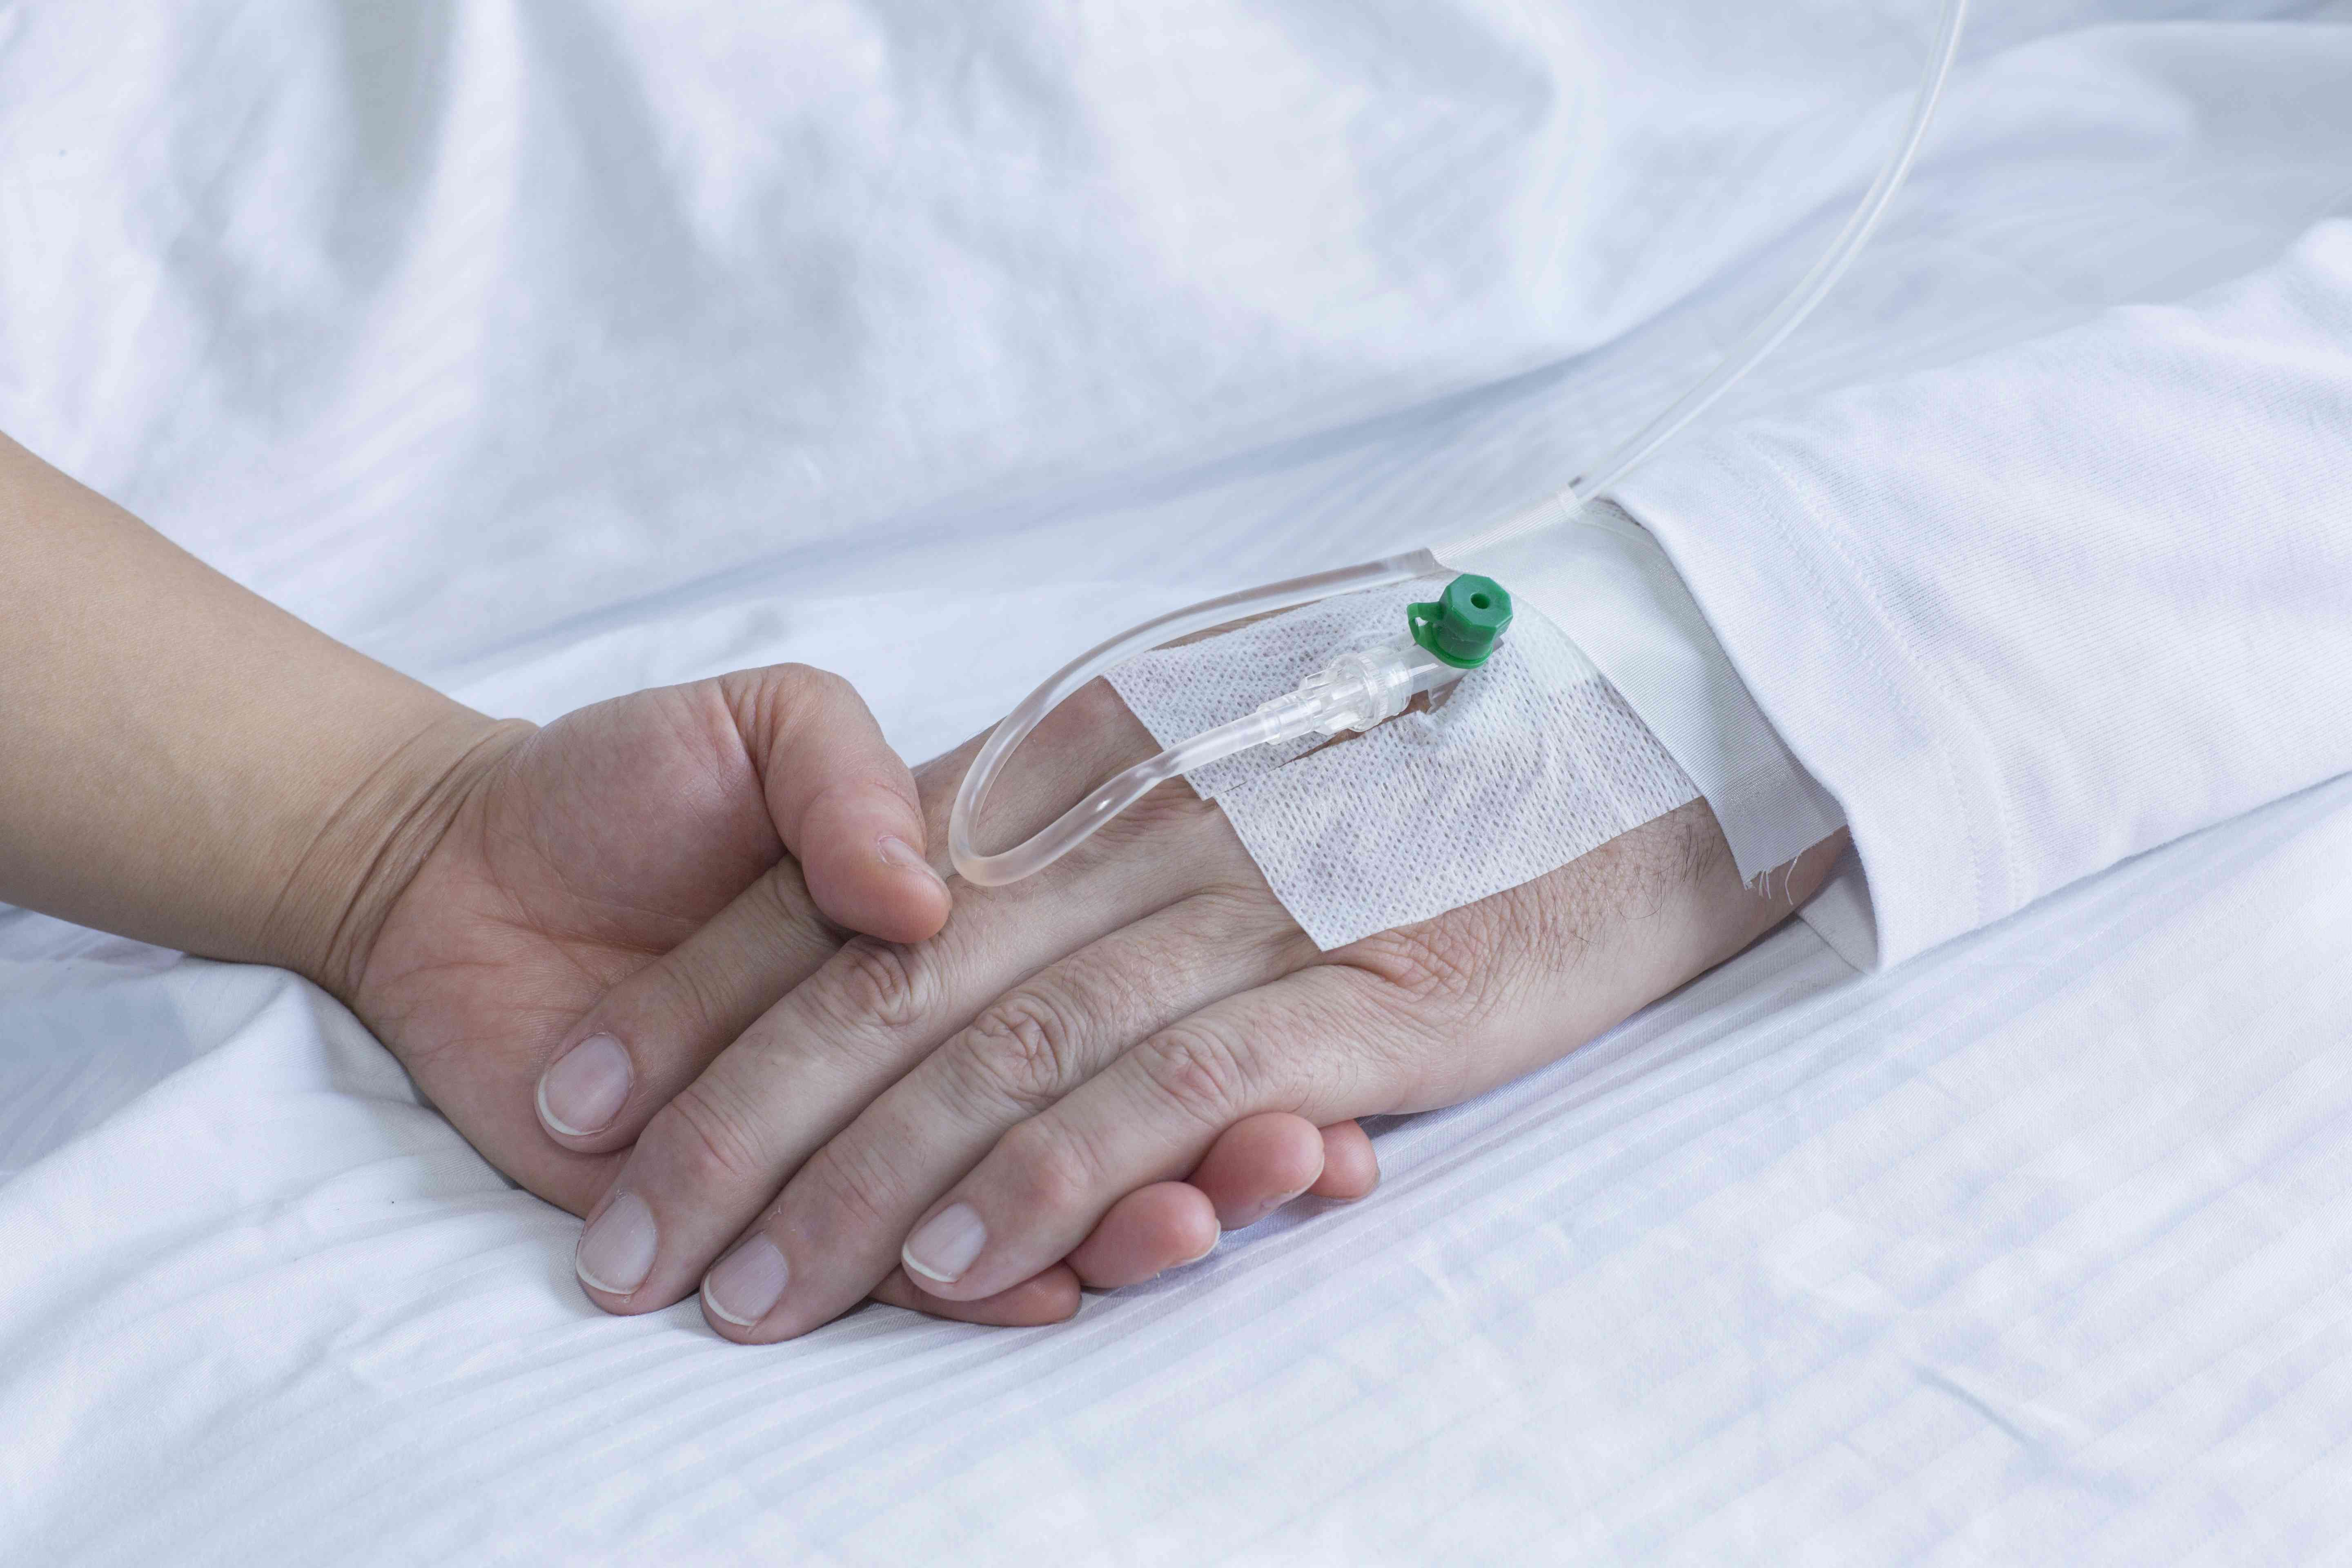 Woman holding hand of man in hospital, close up